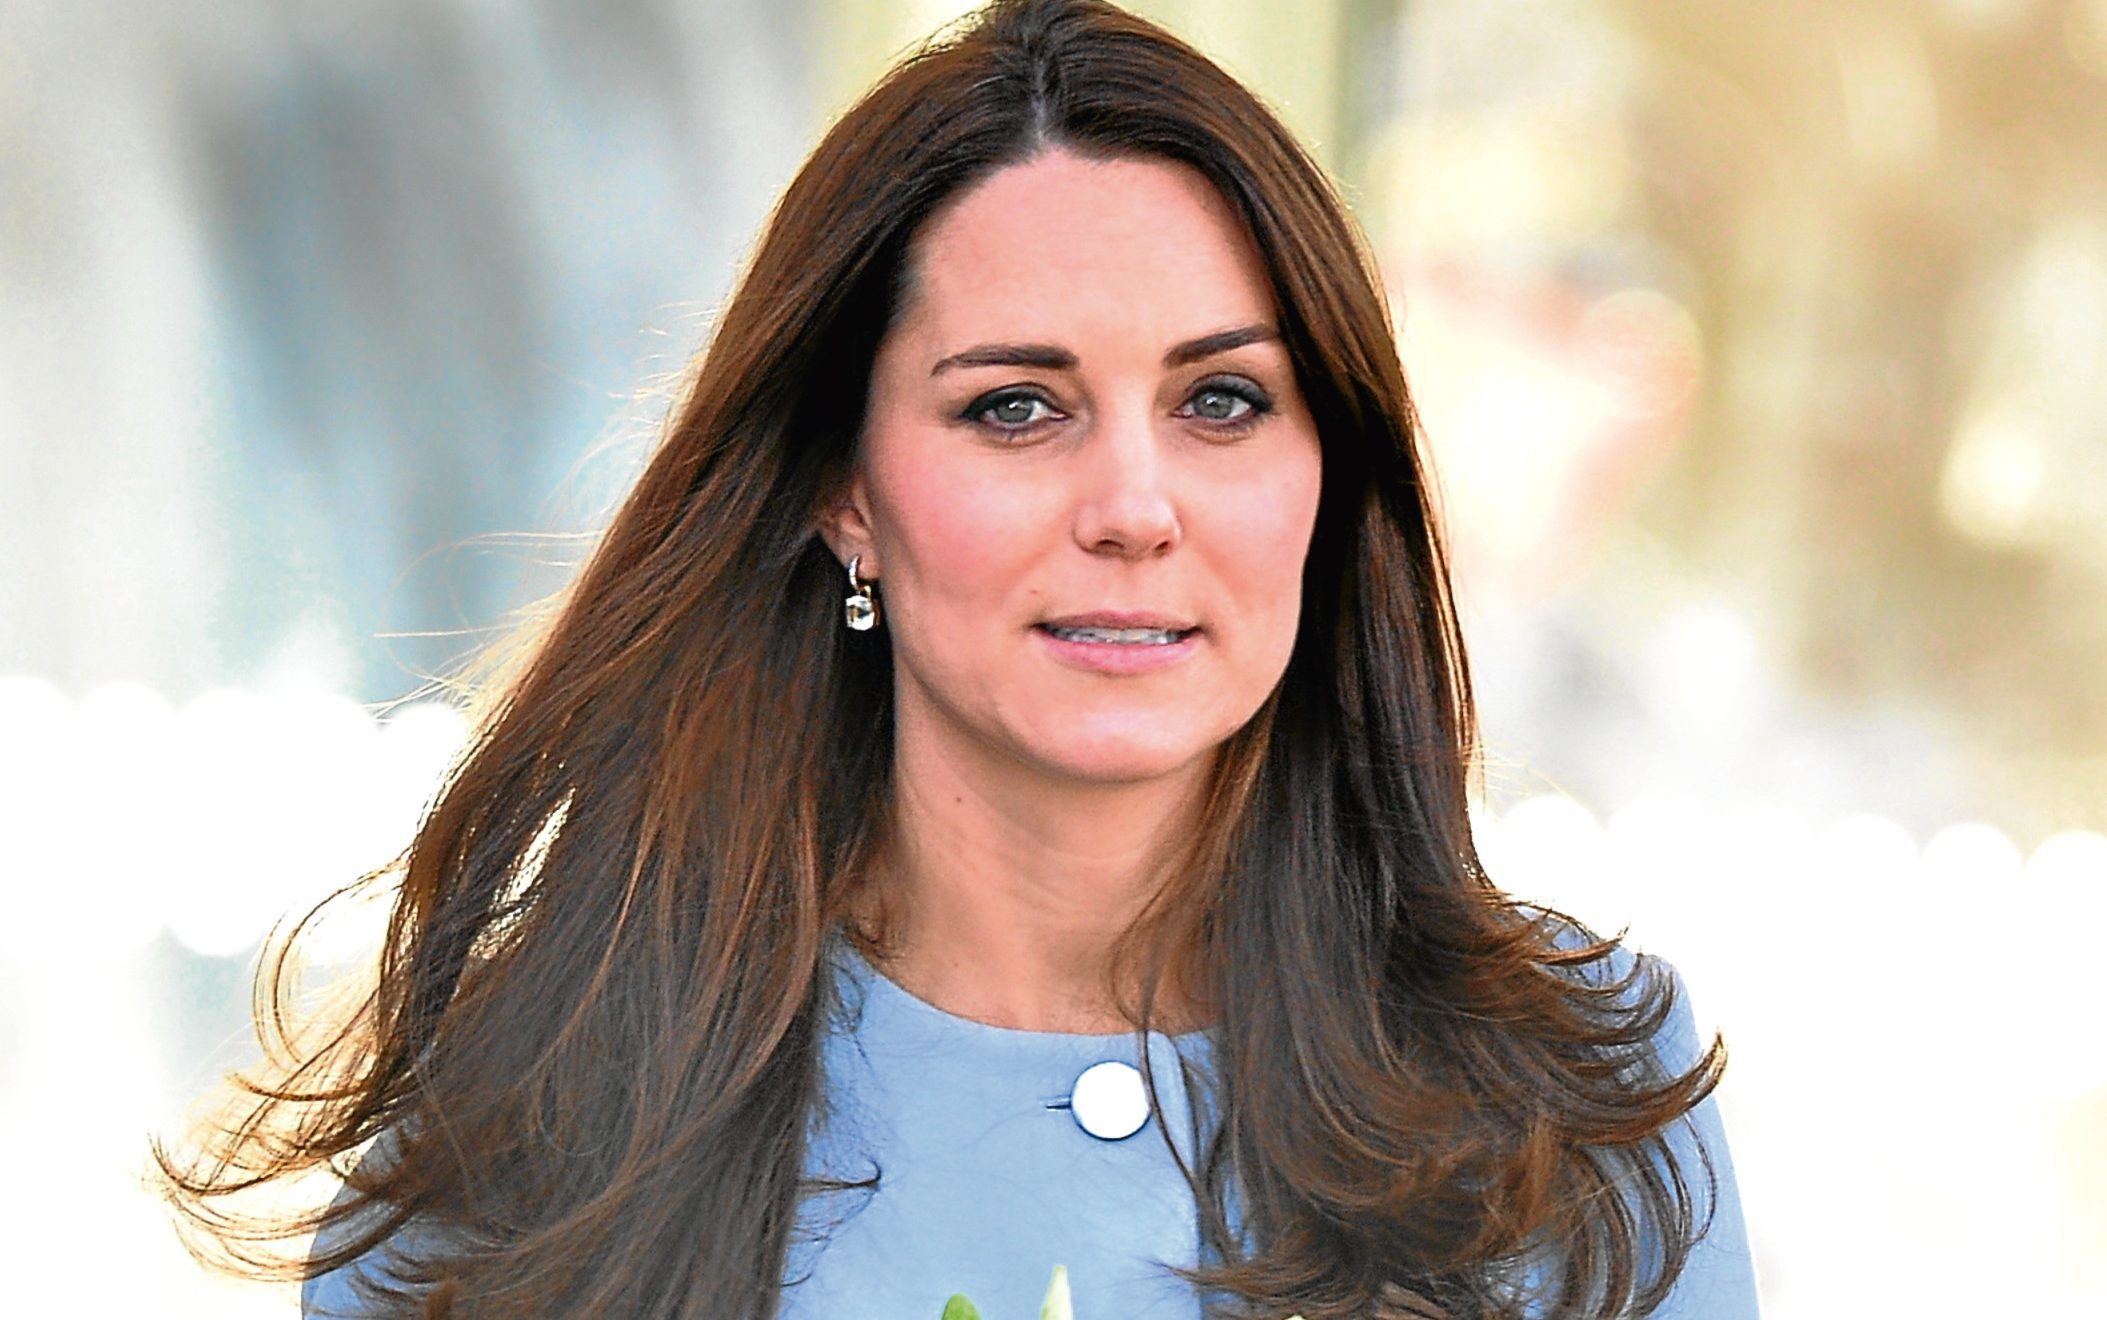 Analysts reckon Kate looks best in cool-blue tints, as it makes her complexion look even-toned (James Warren / PhotoBeat Images)